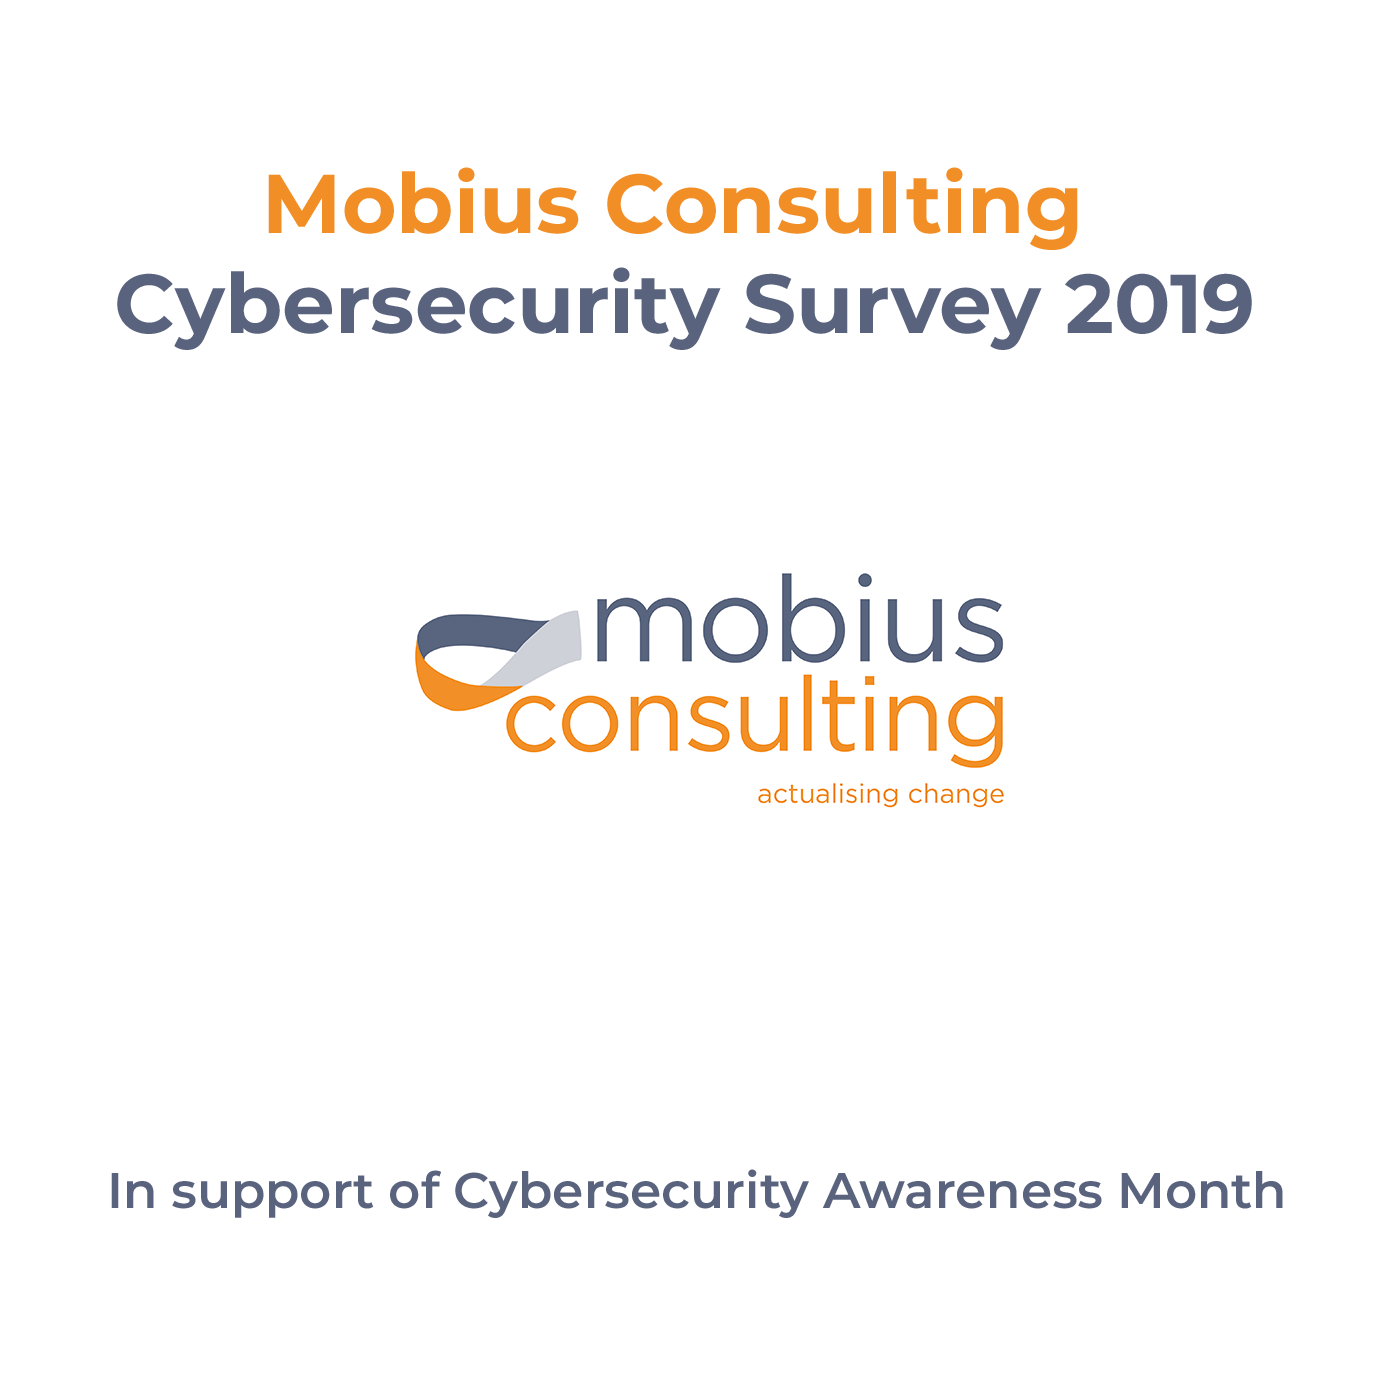 Cybersecuritysurvey